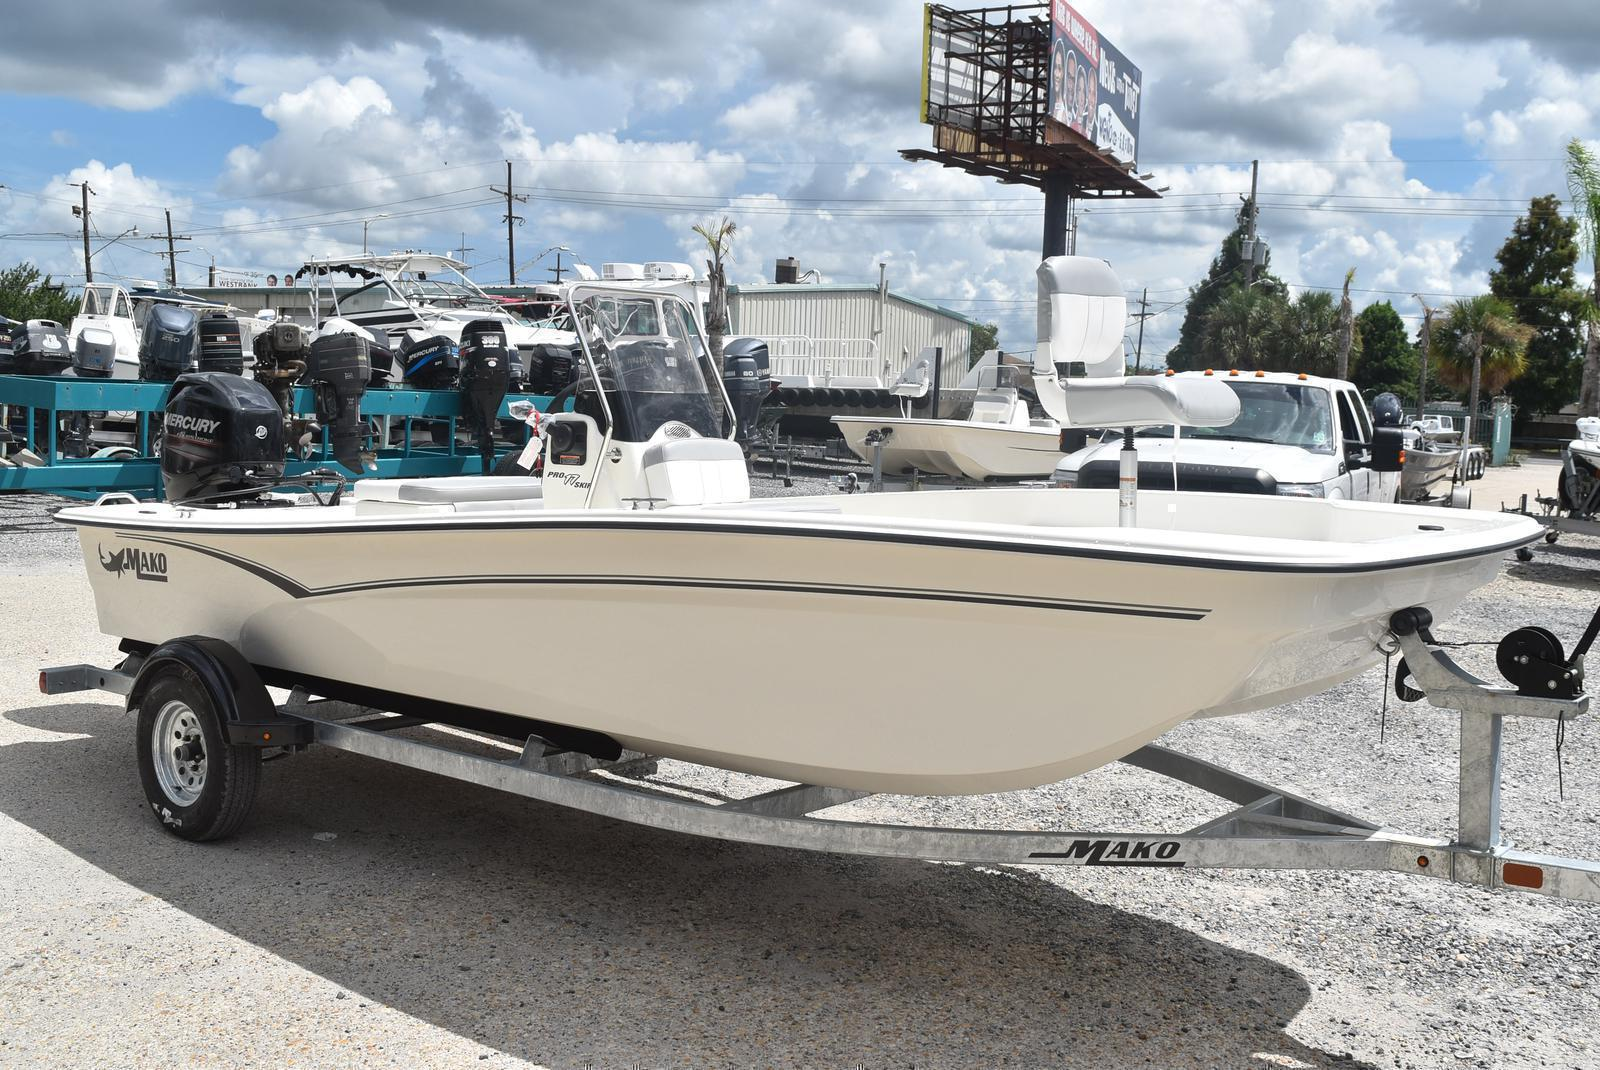 2020 Mako boat for sale, model of the boat is Pro Skiff 17, 75 ELPT & Image # 631 of 702